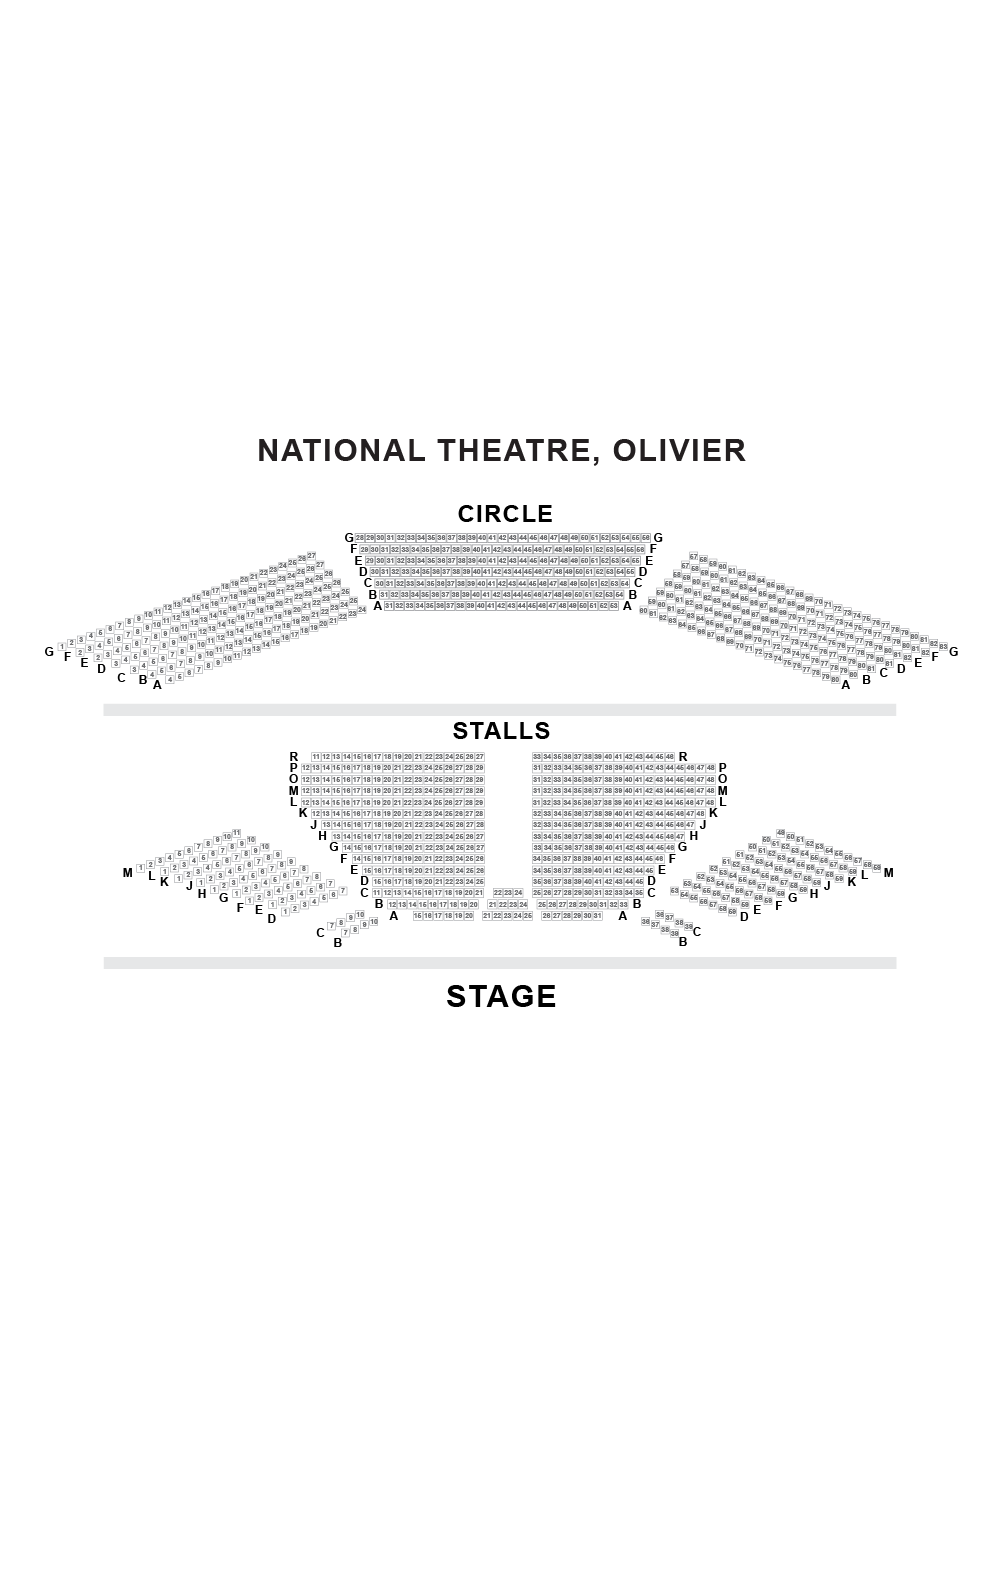 Olivier Theatre (National Theatre) Seating Plan - - London Box Office